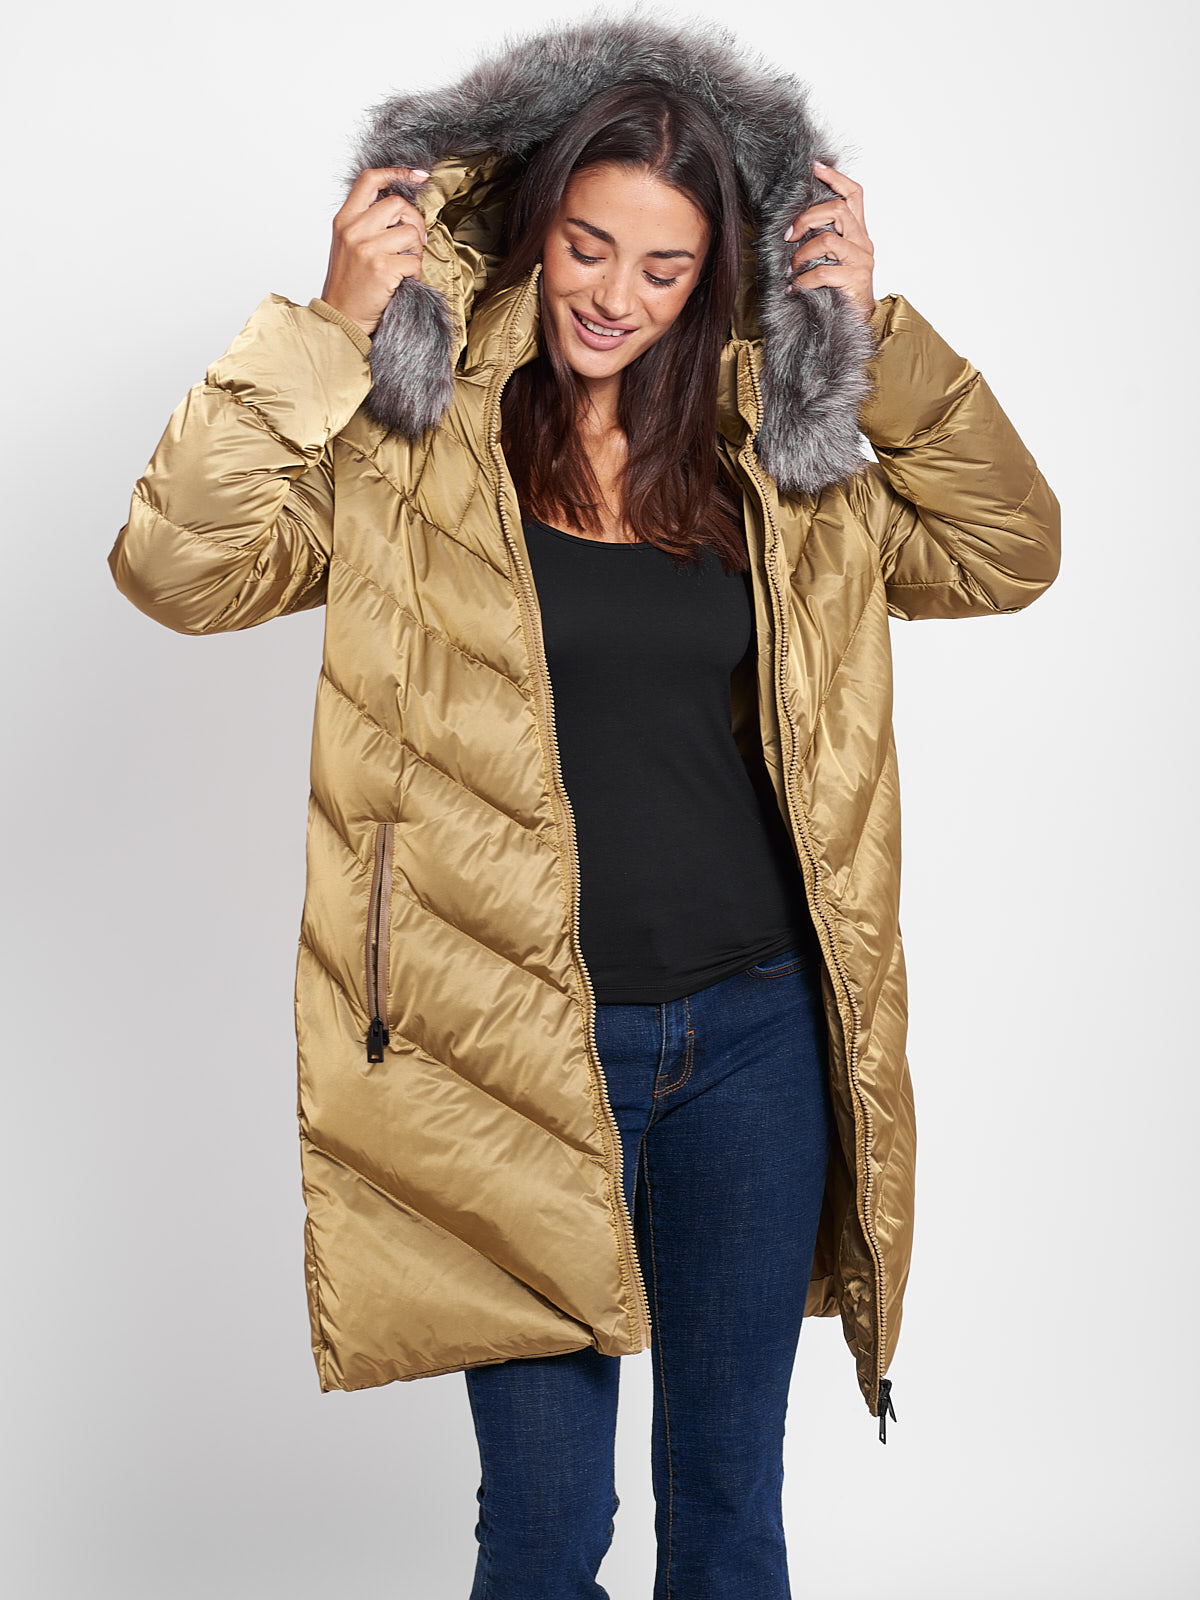 DAHLIA GOLD WOMENS PUFFER COAT